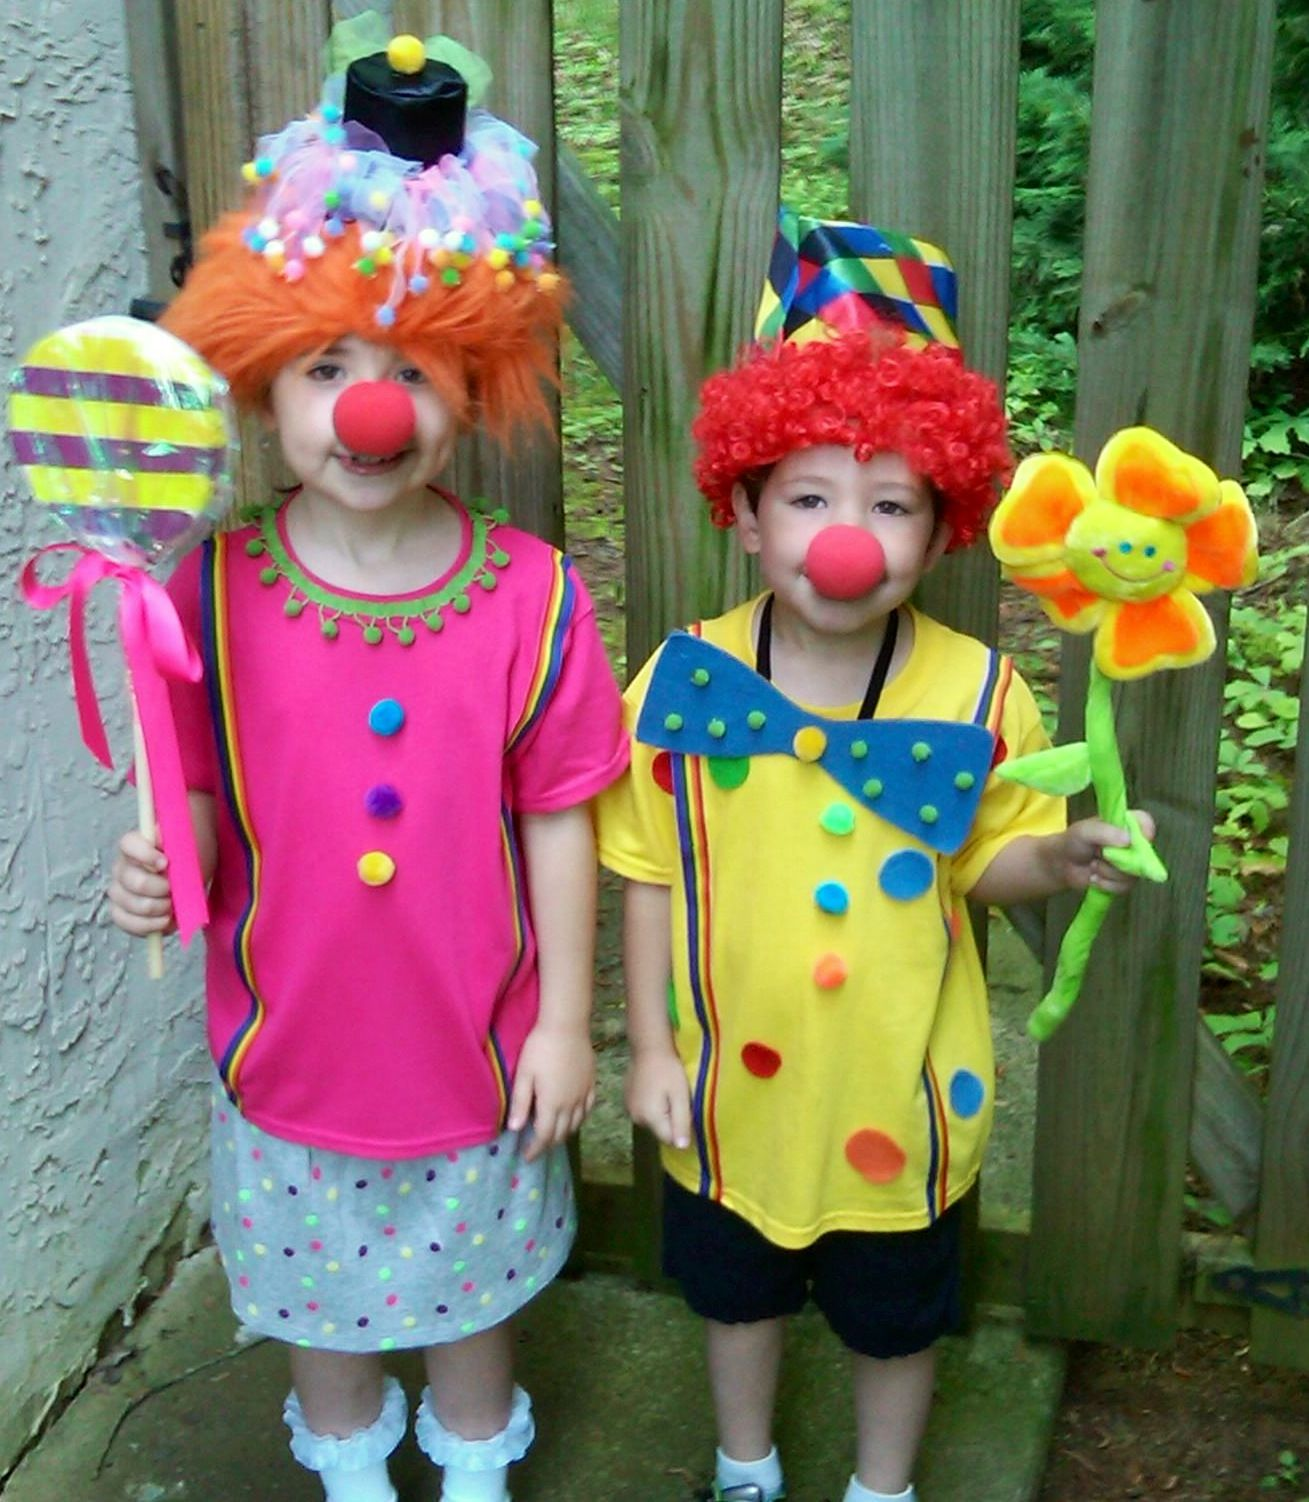 homemade clown costumes crafty goodness pinterest. Black Bedroom Furniture Sets. Home Design Ideas